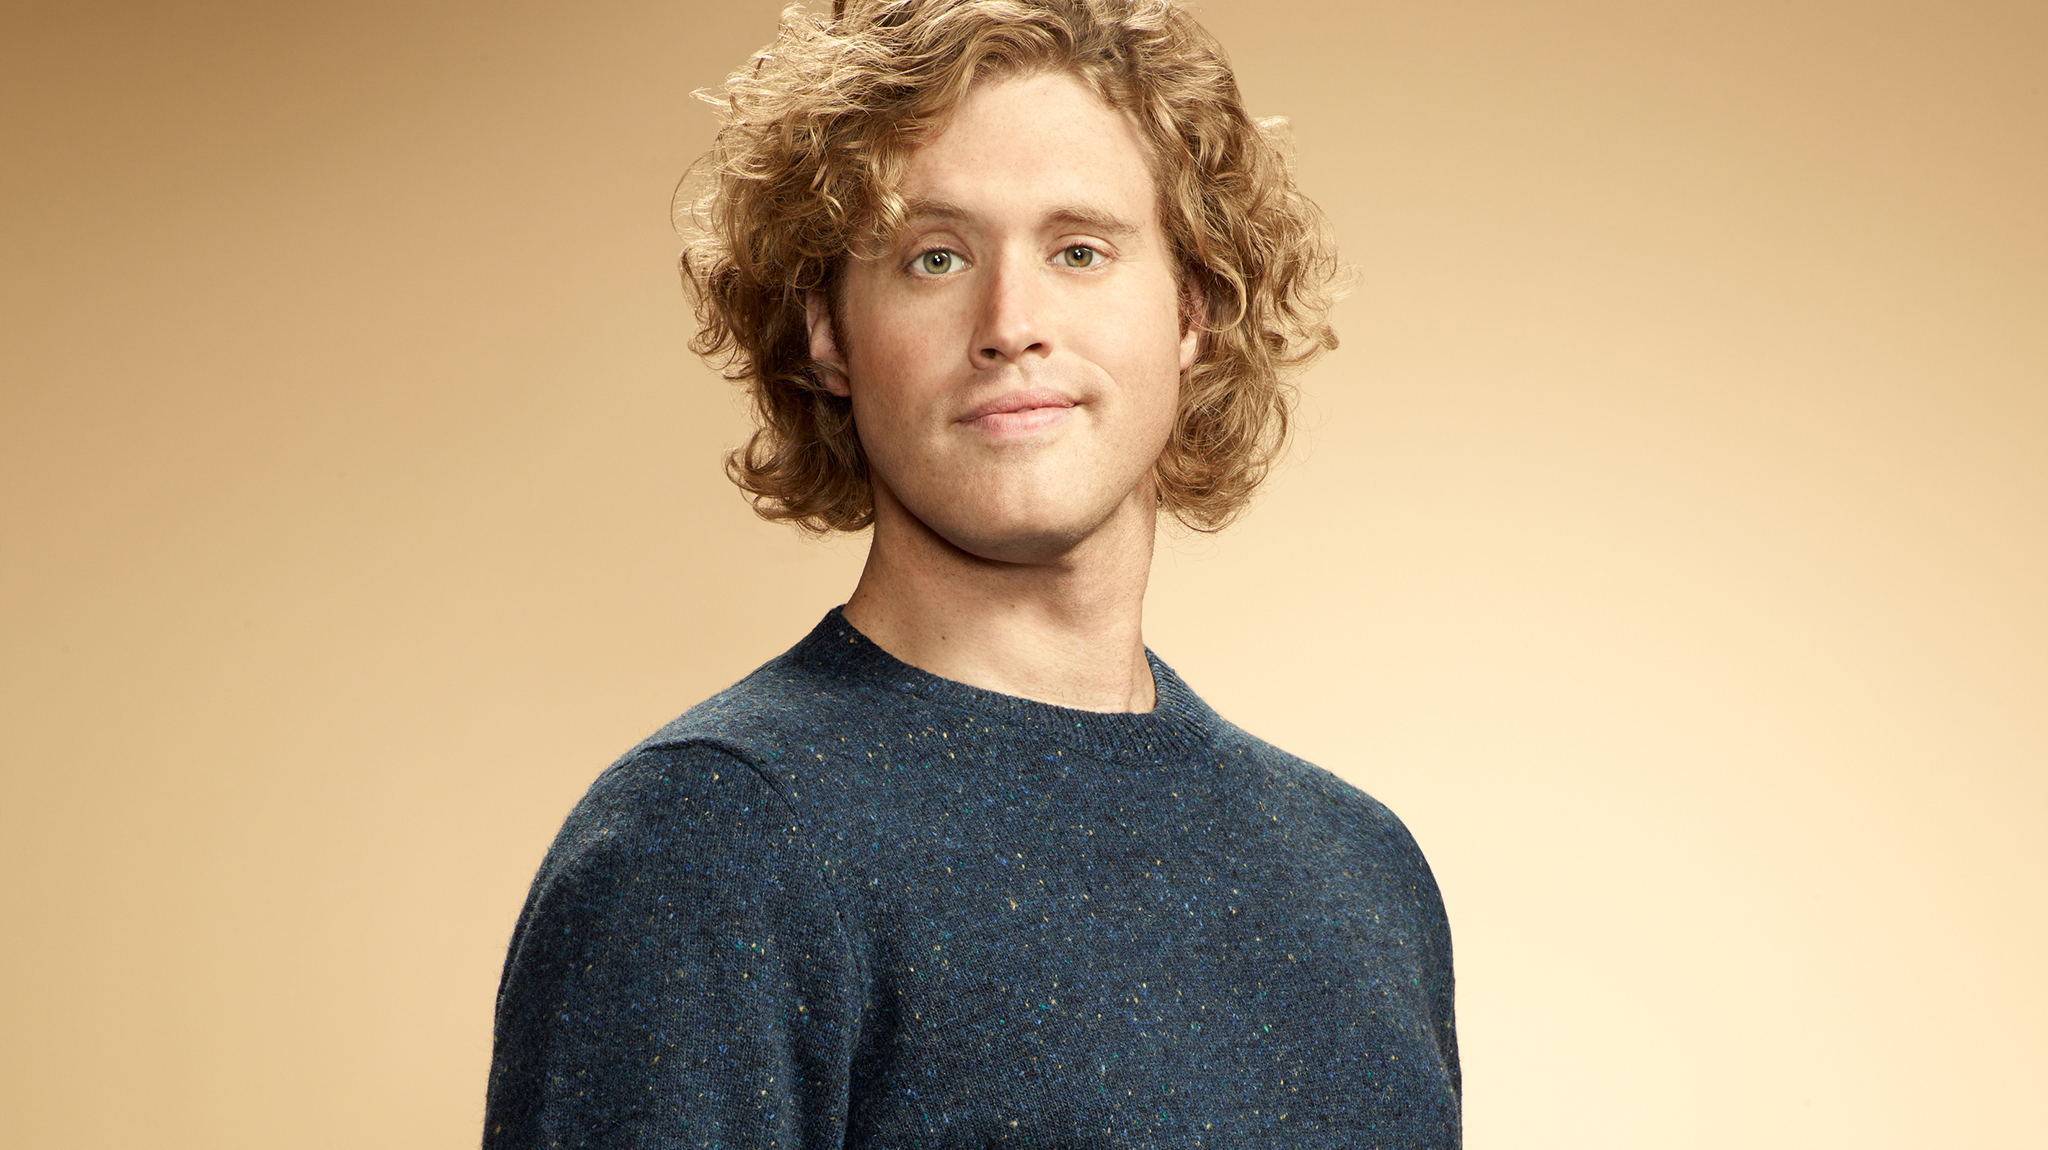 'Deadpool' Casting: T.J. Miller Confirms He's Playing Weasel